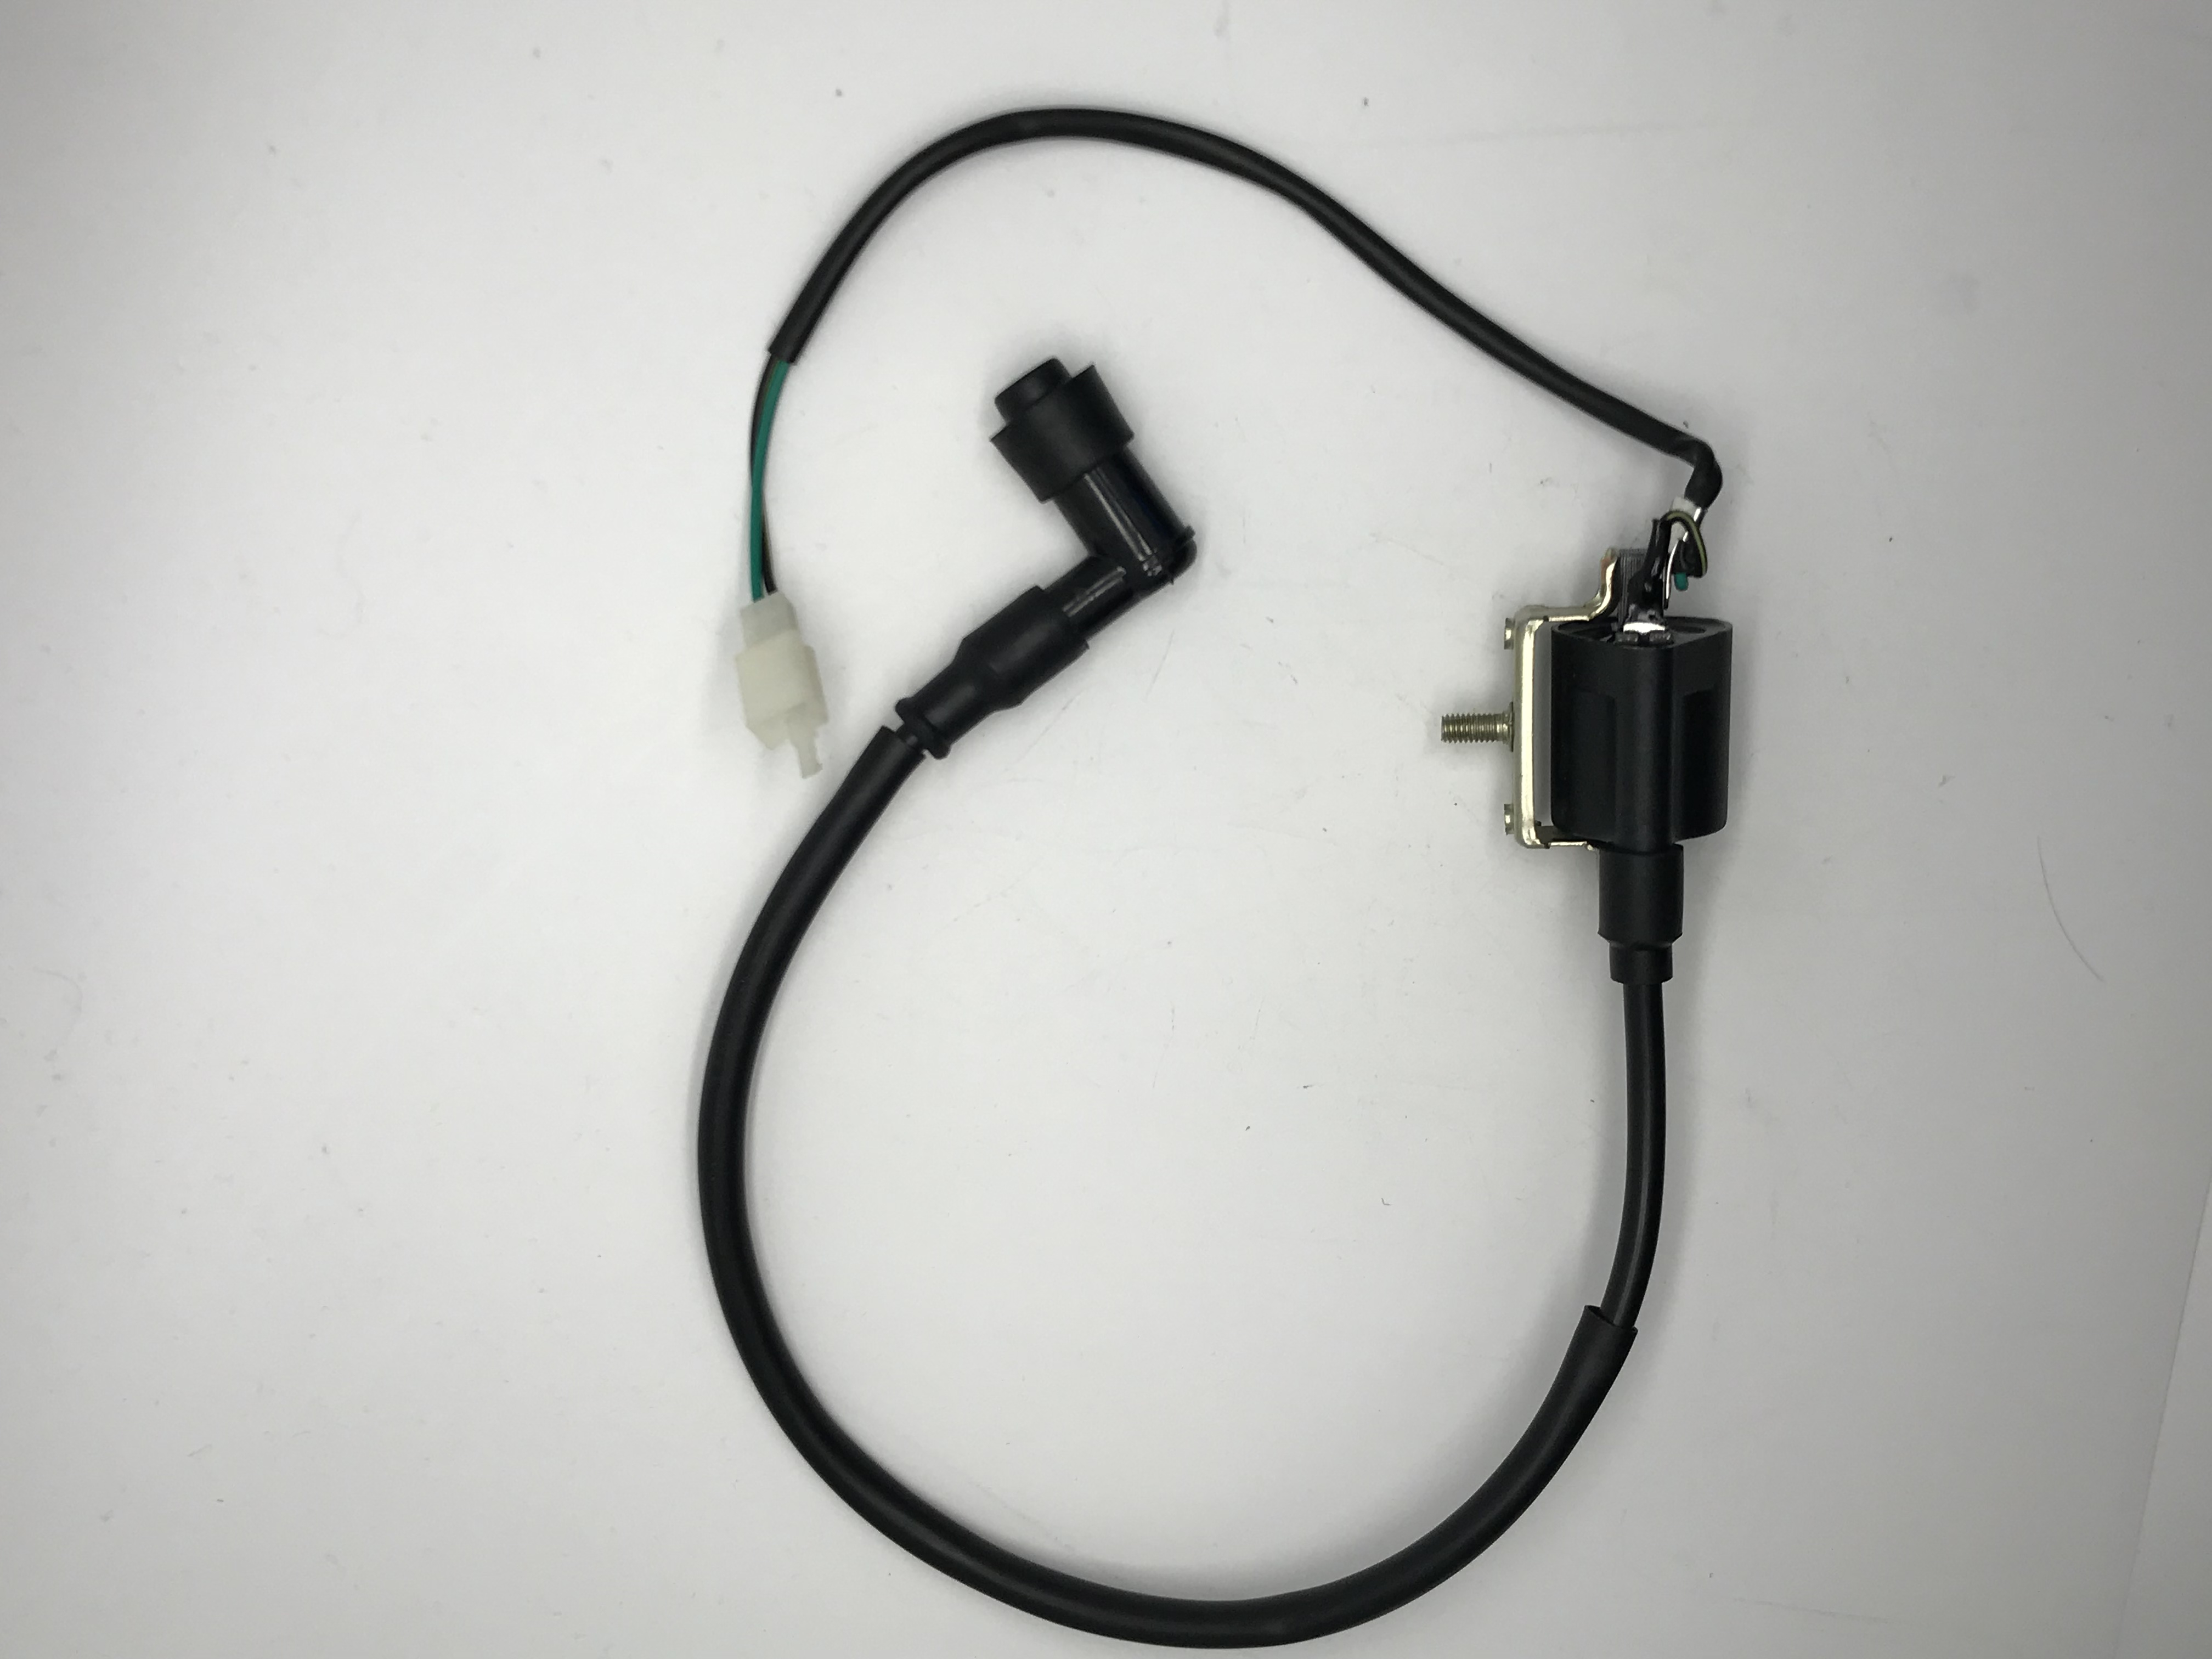 Orion Ignition Coil / HT Lead